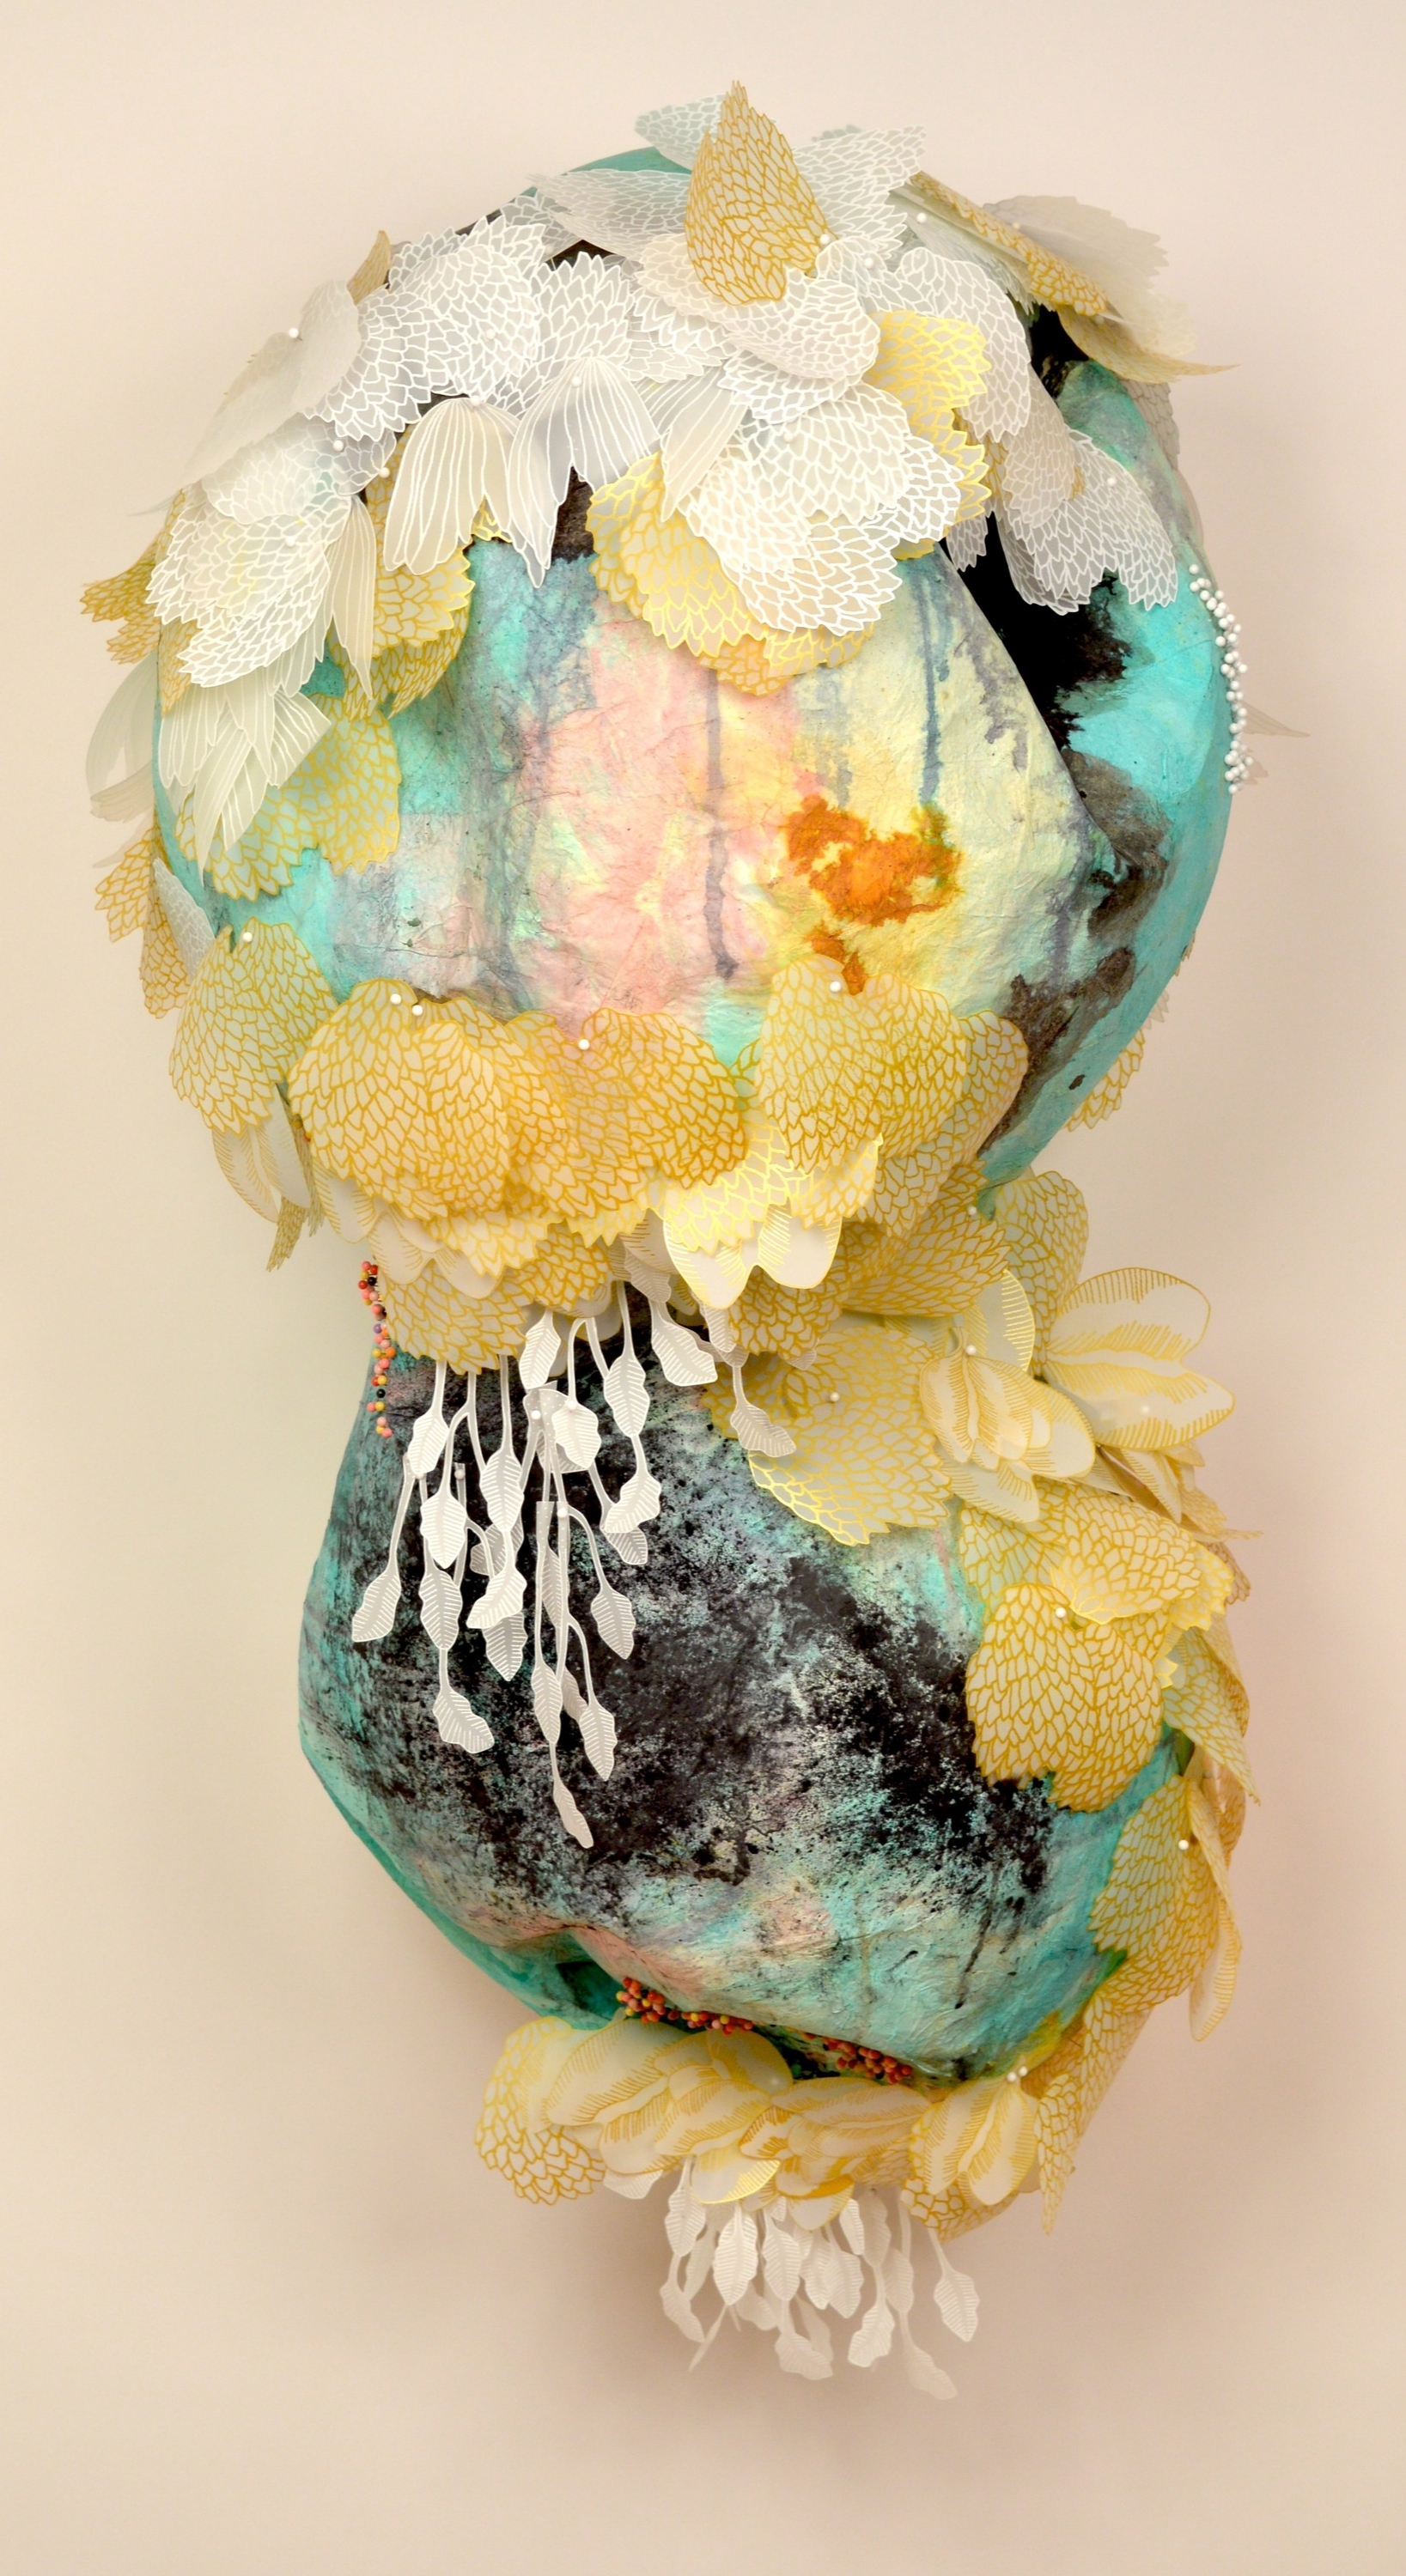 Solastalgic Dream by Terri Fidelak, 2015, mixed media, 5'x2.5'x2'